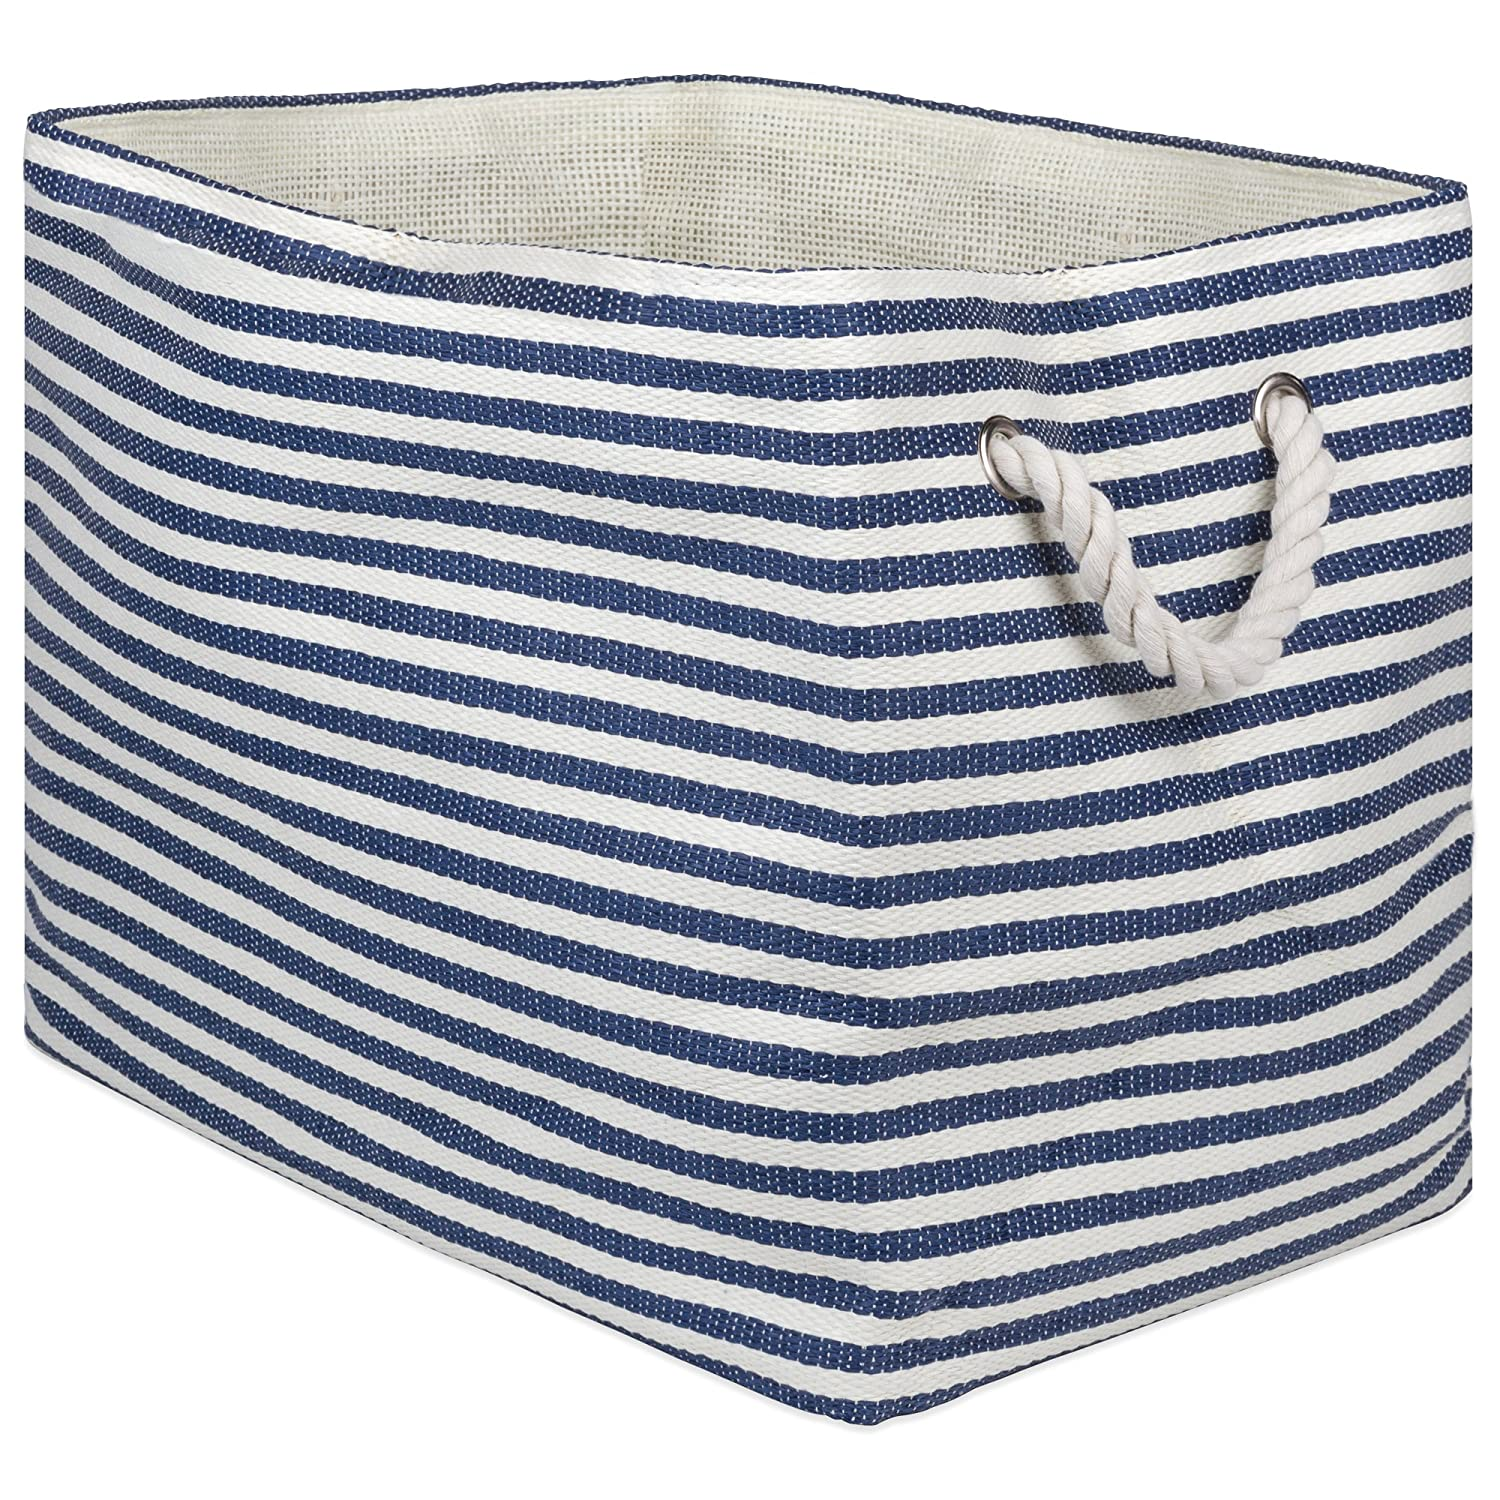 "DII Oversize Woven Paper Storage Basket or Bin (Medium - 15x10x12""), Aqua Pin Stripe CAMZ10087"